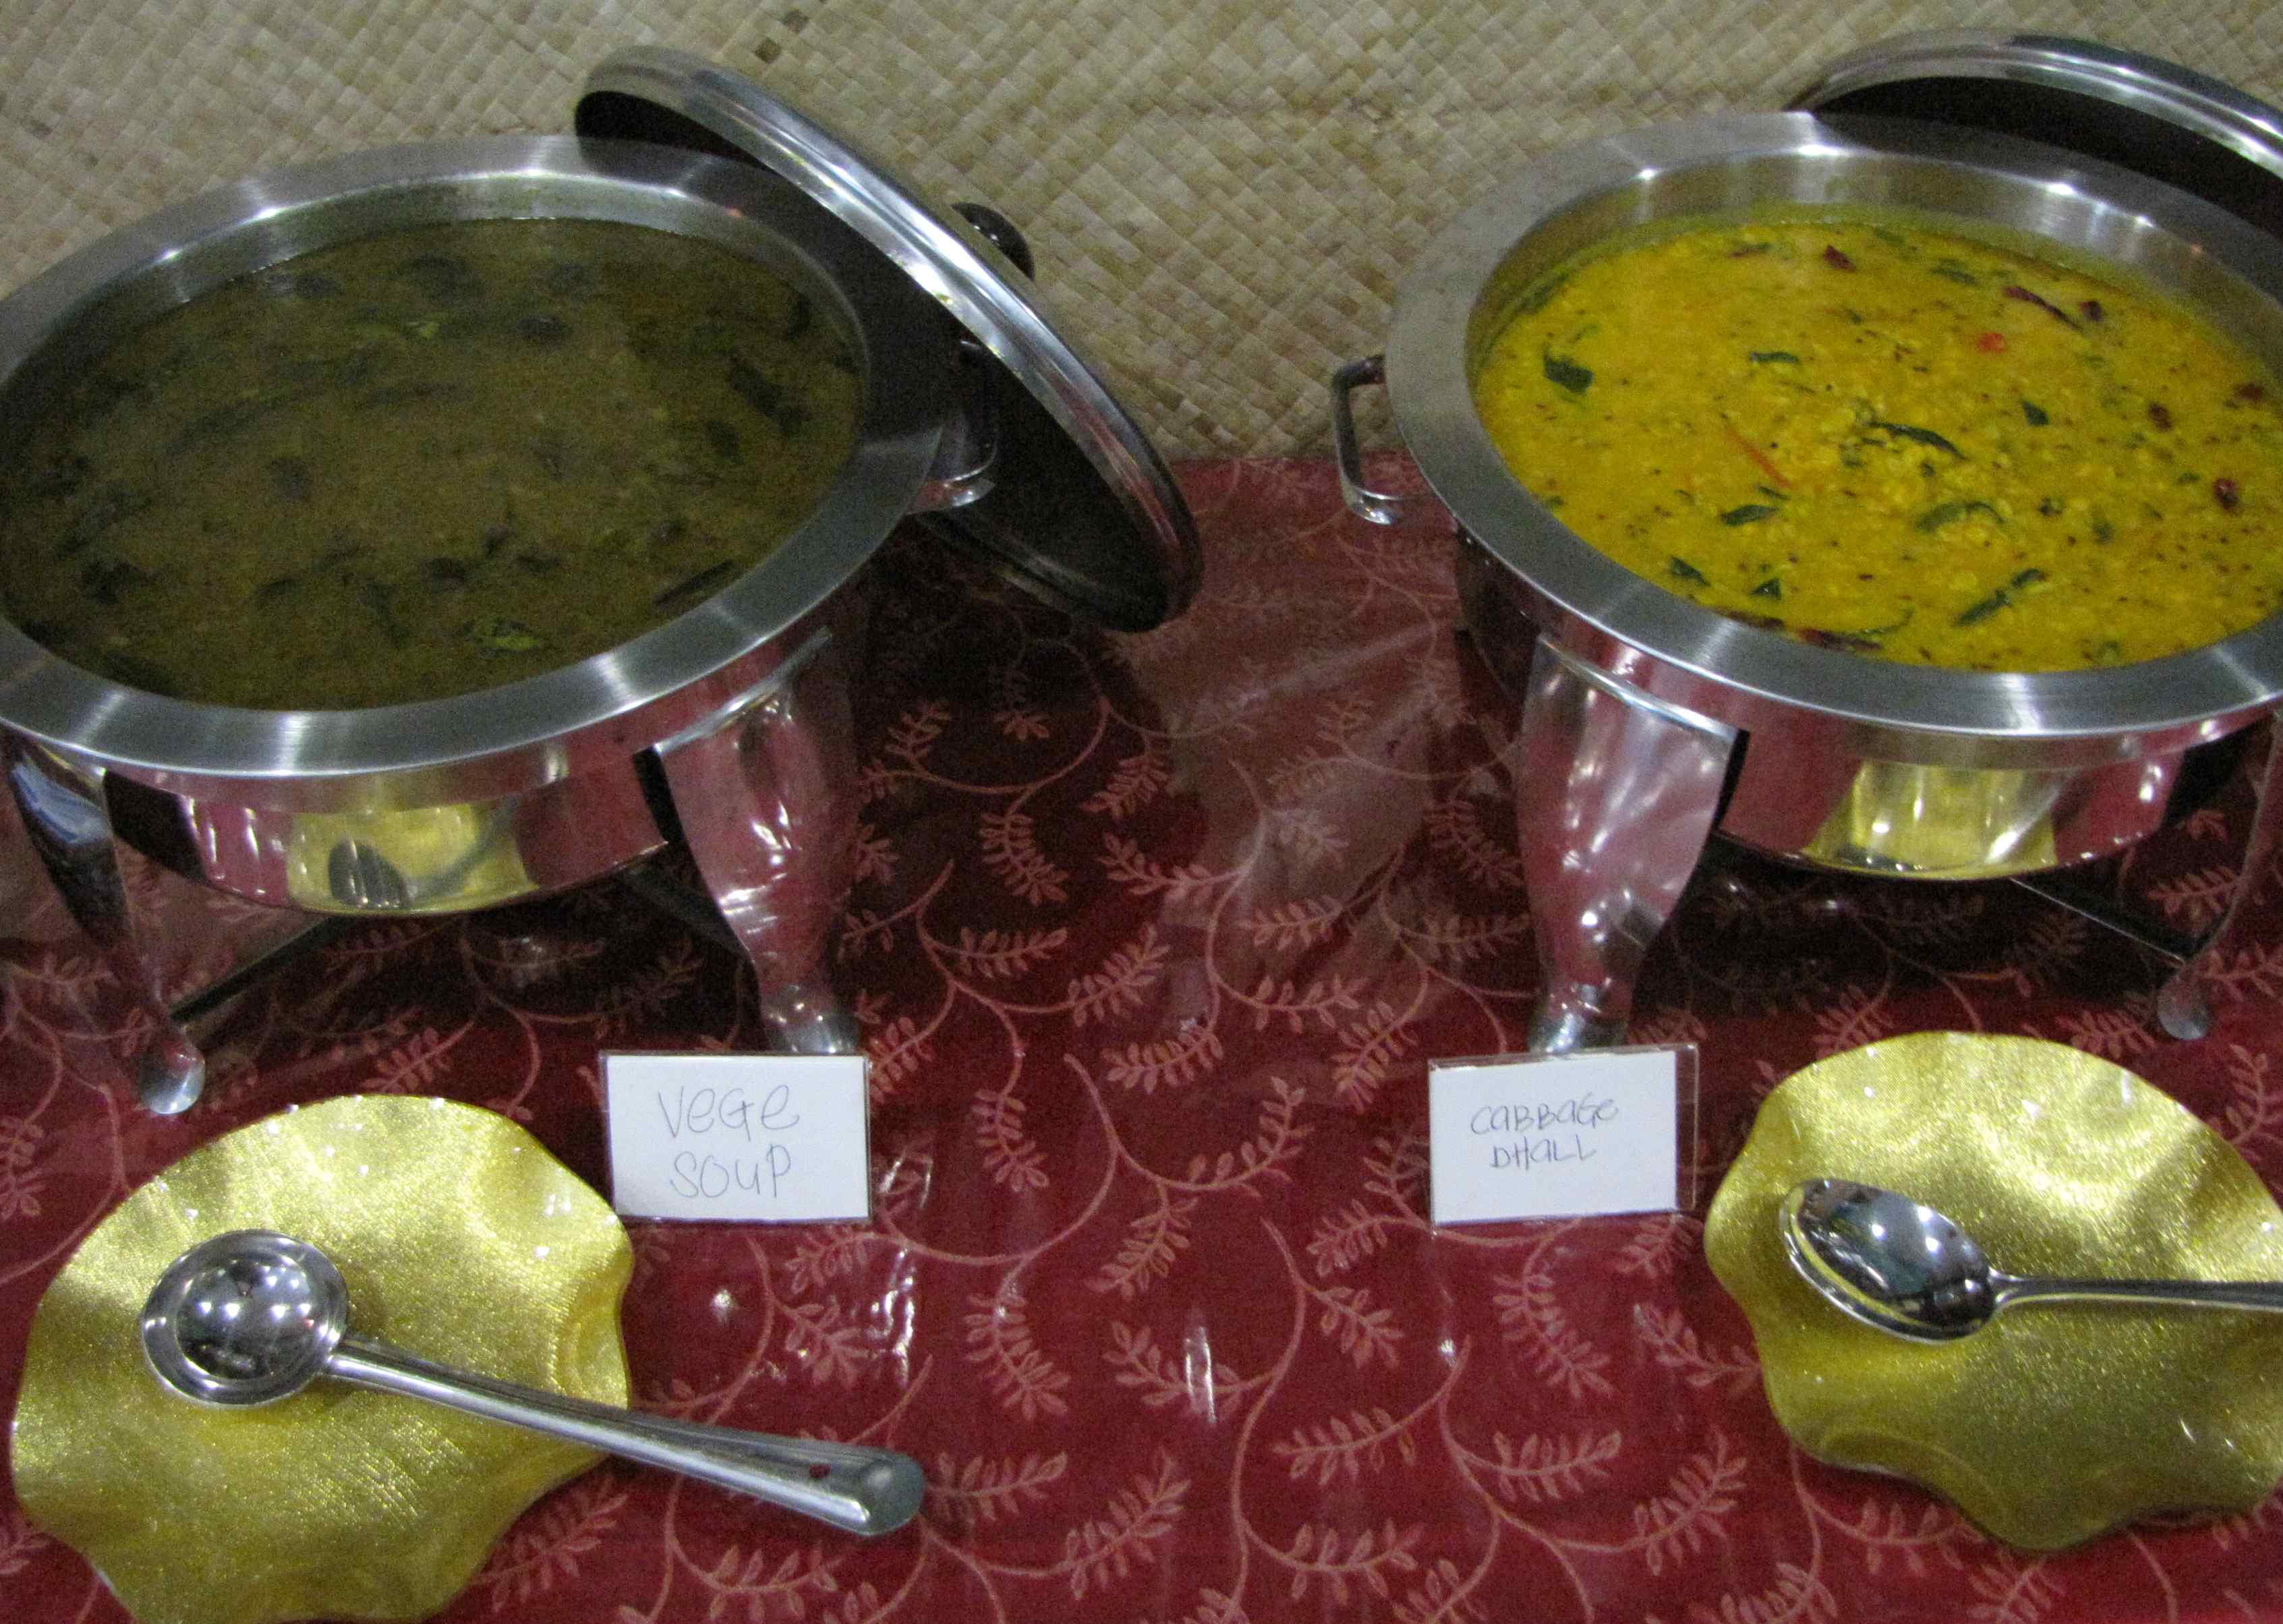 photo of Vegetable soup and cabbage daal at the buffet